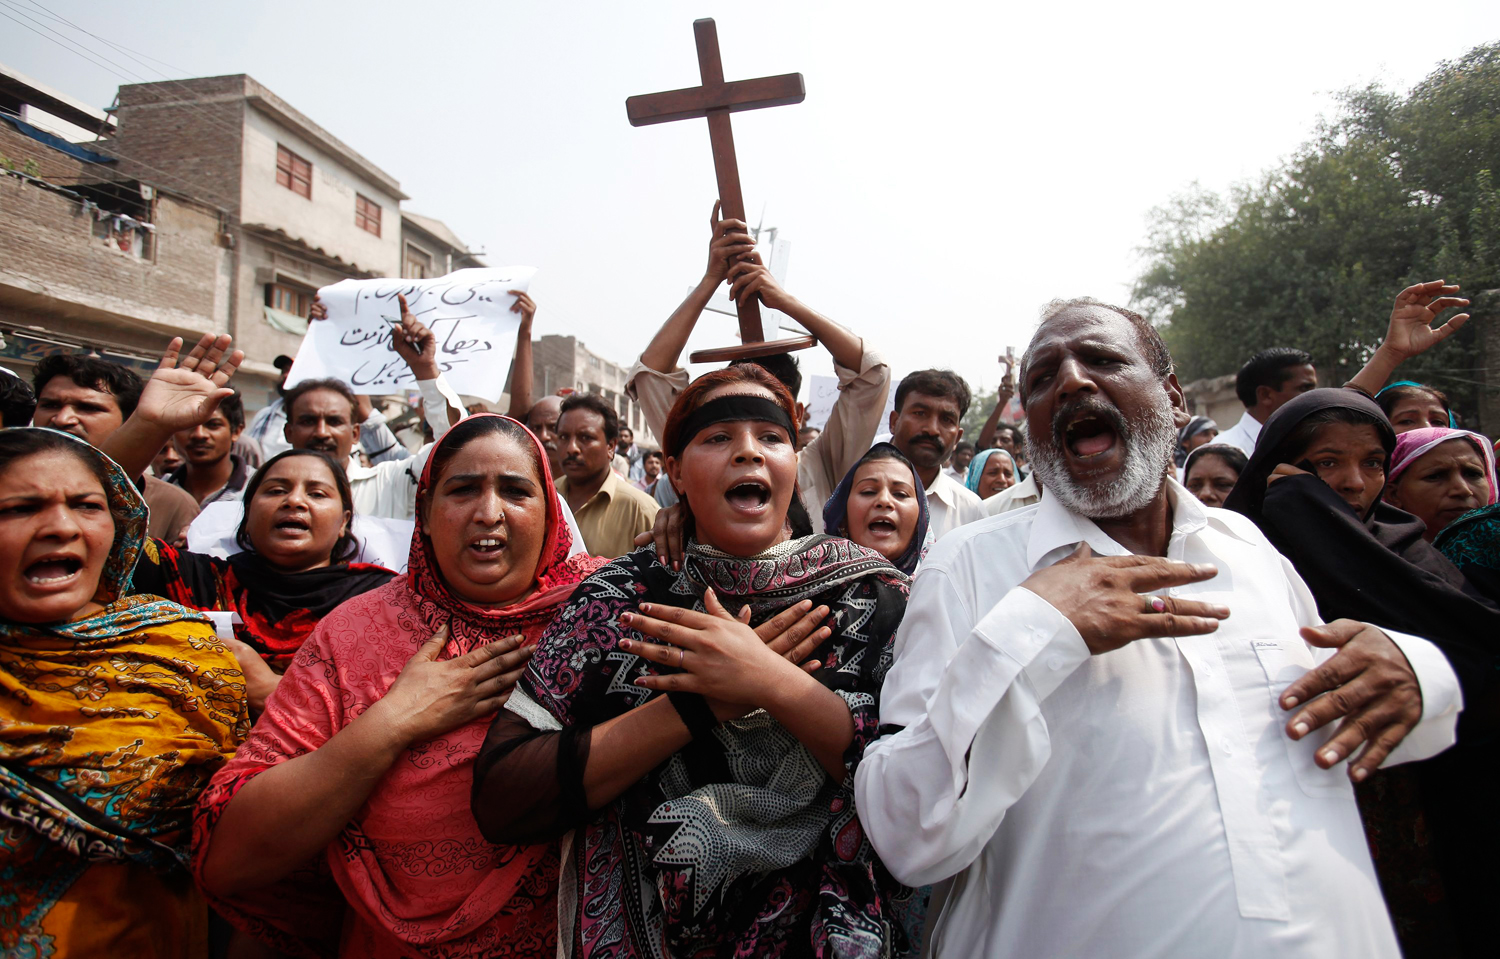 Members of the Pakistani Christian community chant slogans during a protest rally to condemn Sunday's suicide attack on a church service in Peshawar.